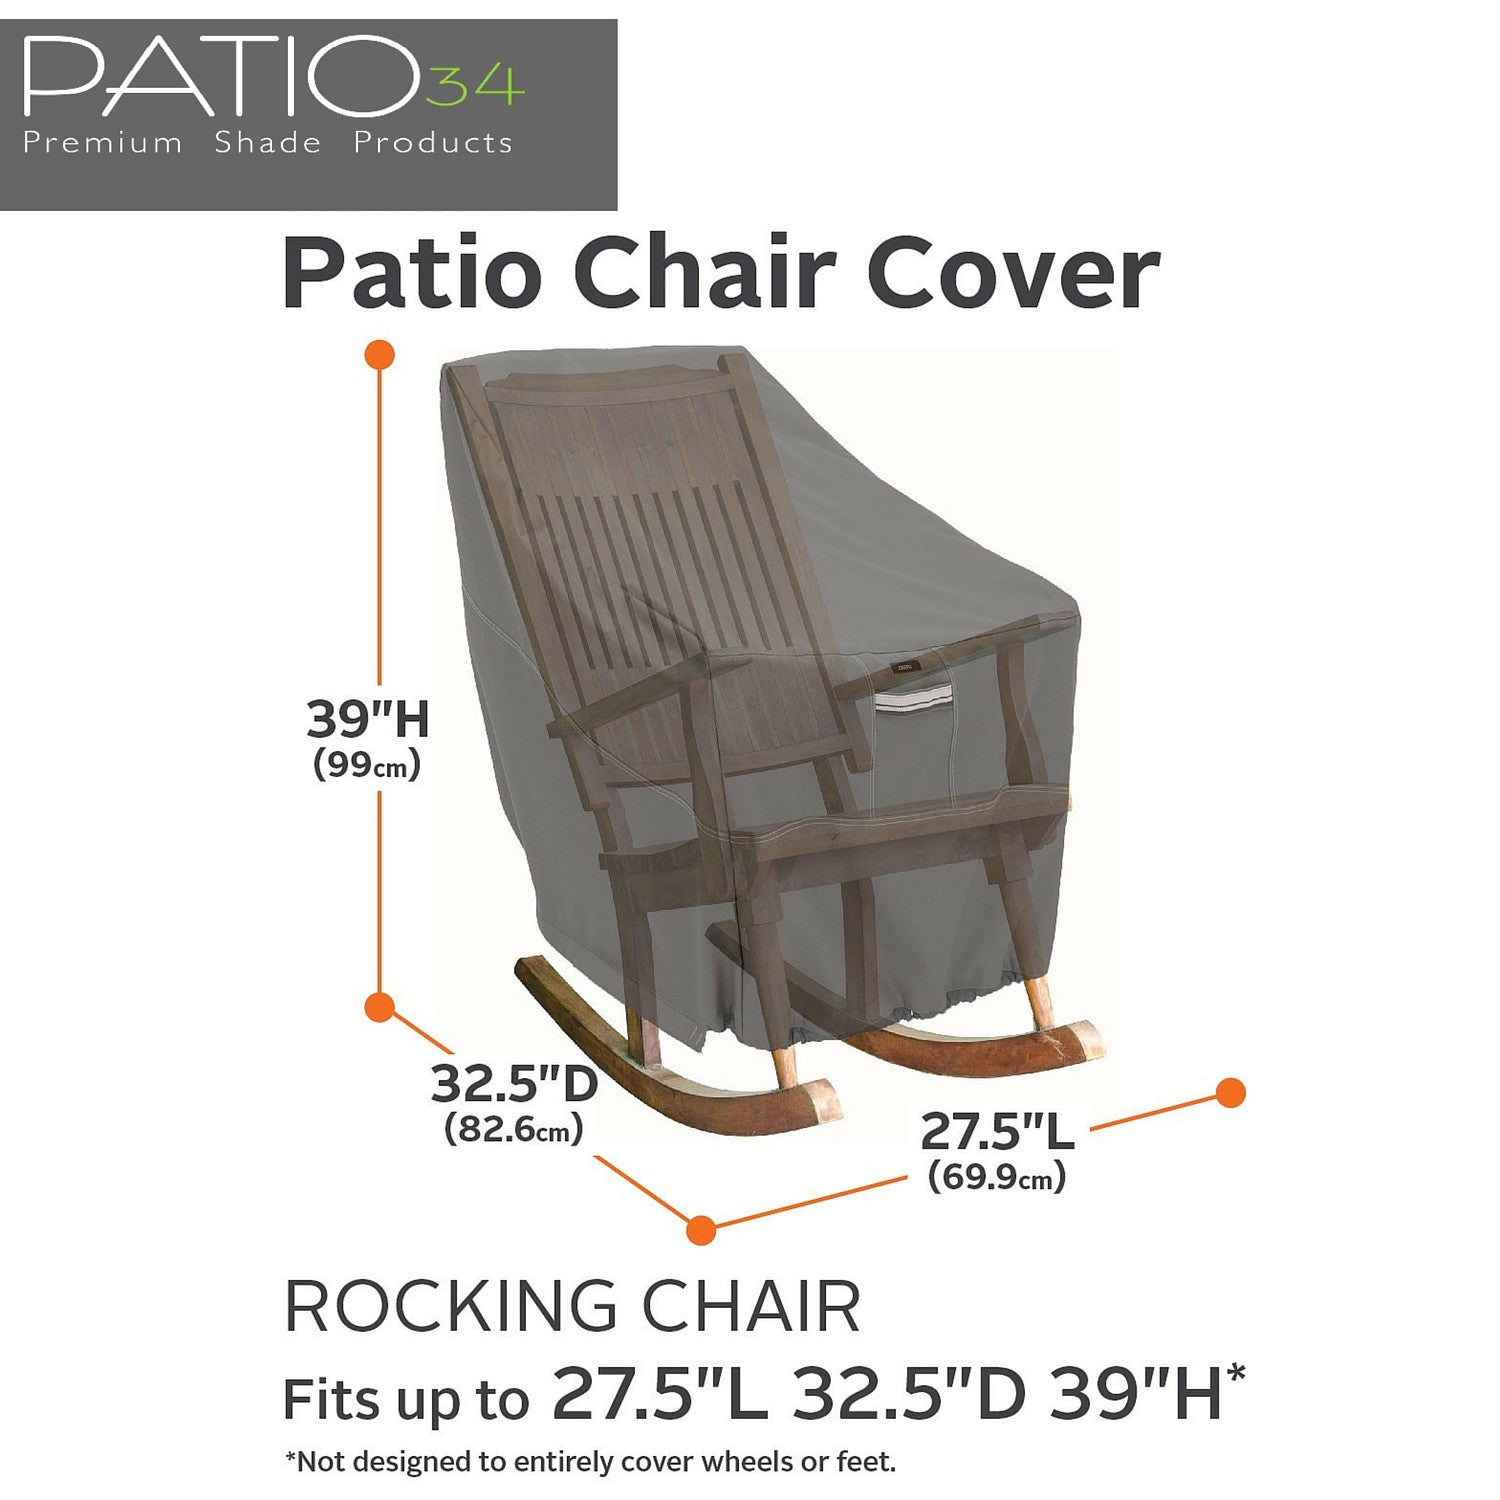 Premium Rocking Chair Cover Charcoal Patio34